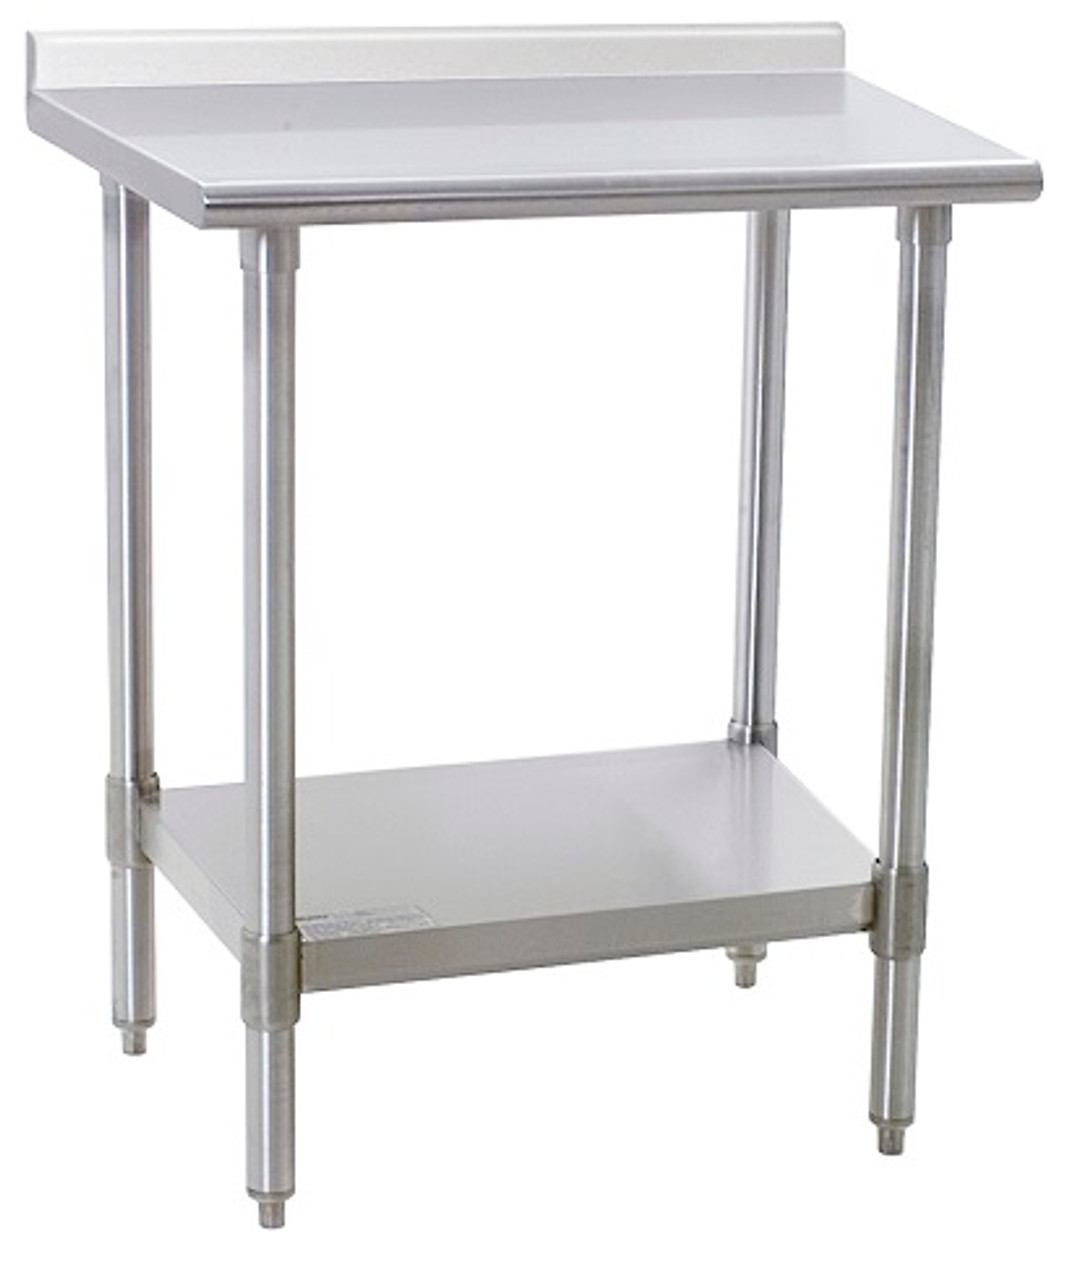 Stainless Steel Work Table - Eagle Table, Budget, 16/430 ...